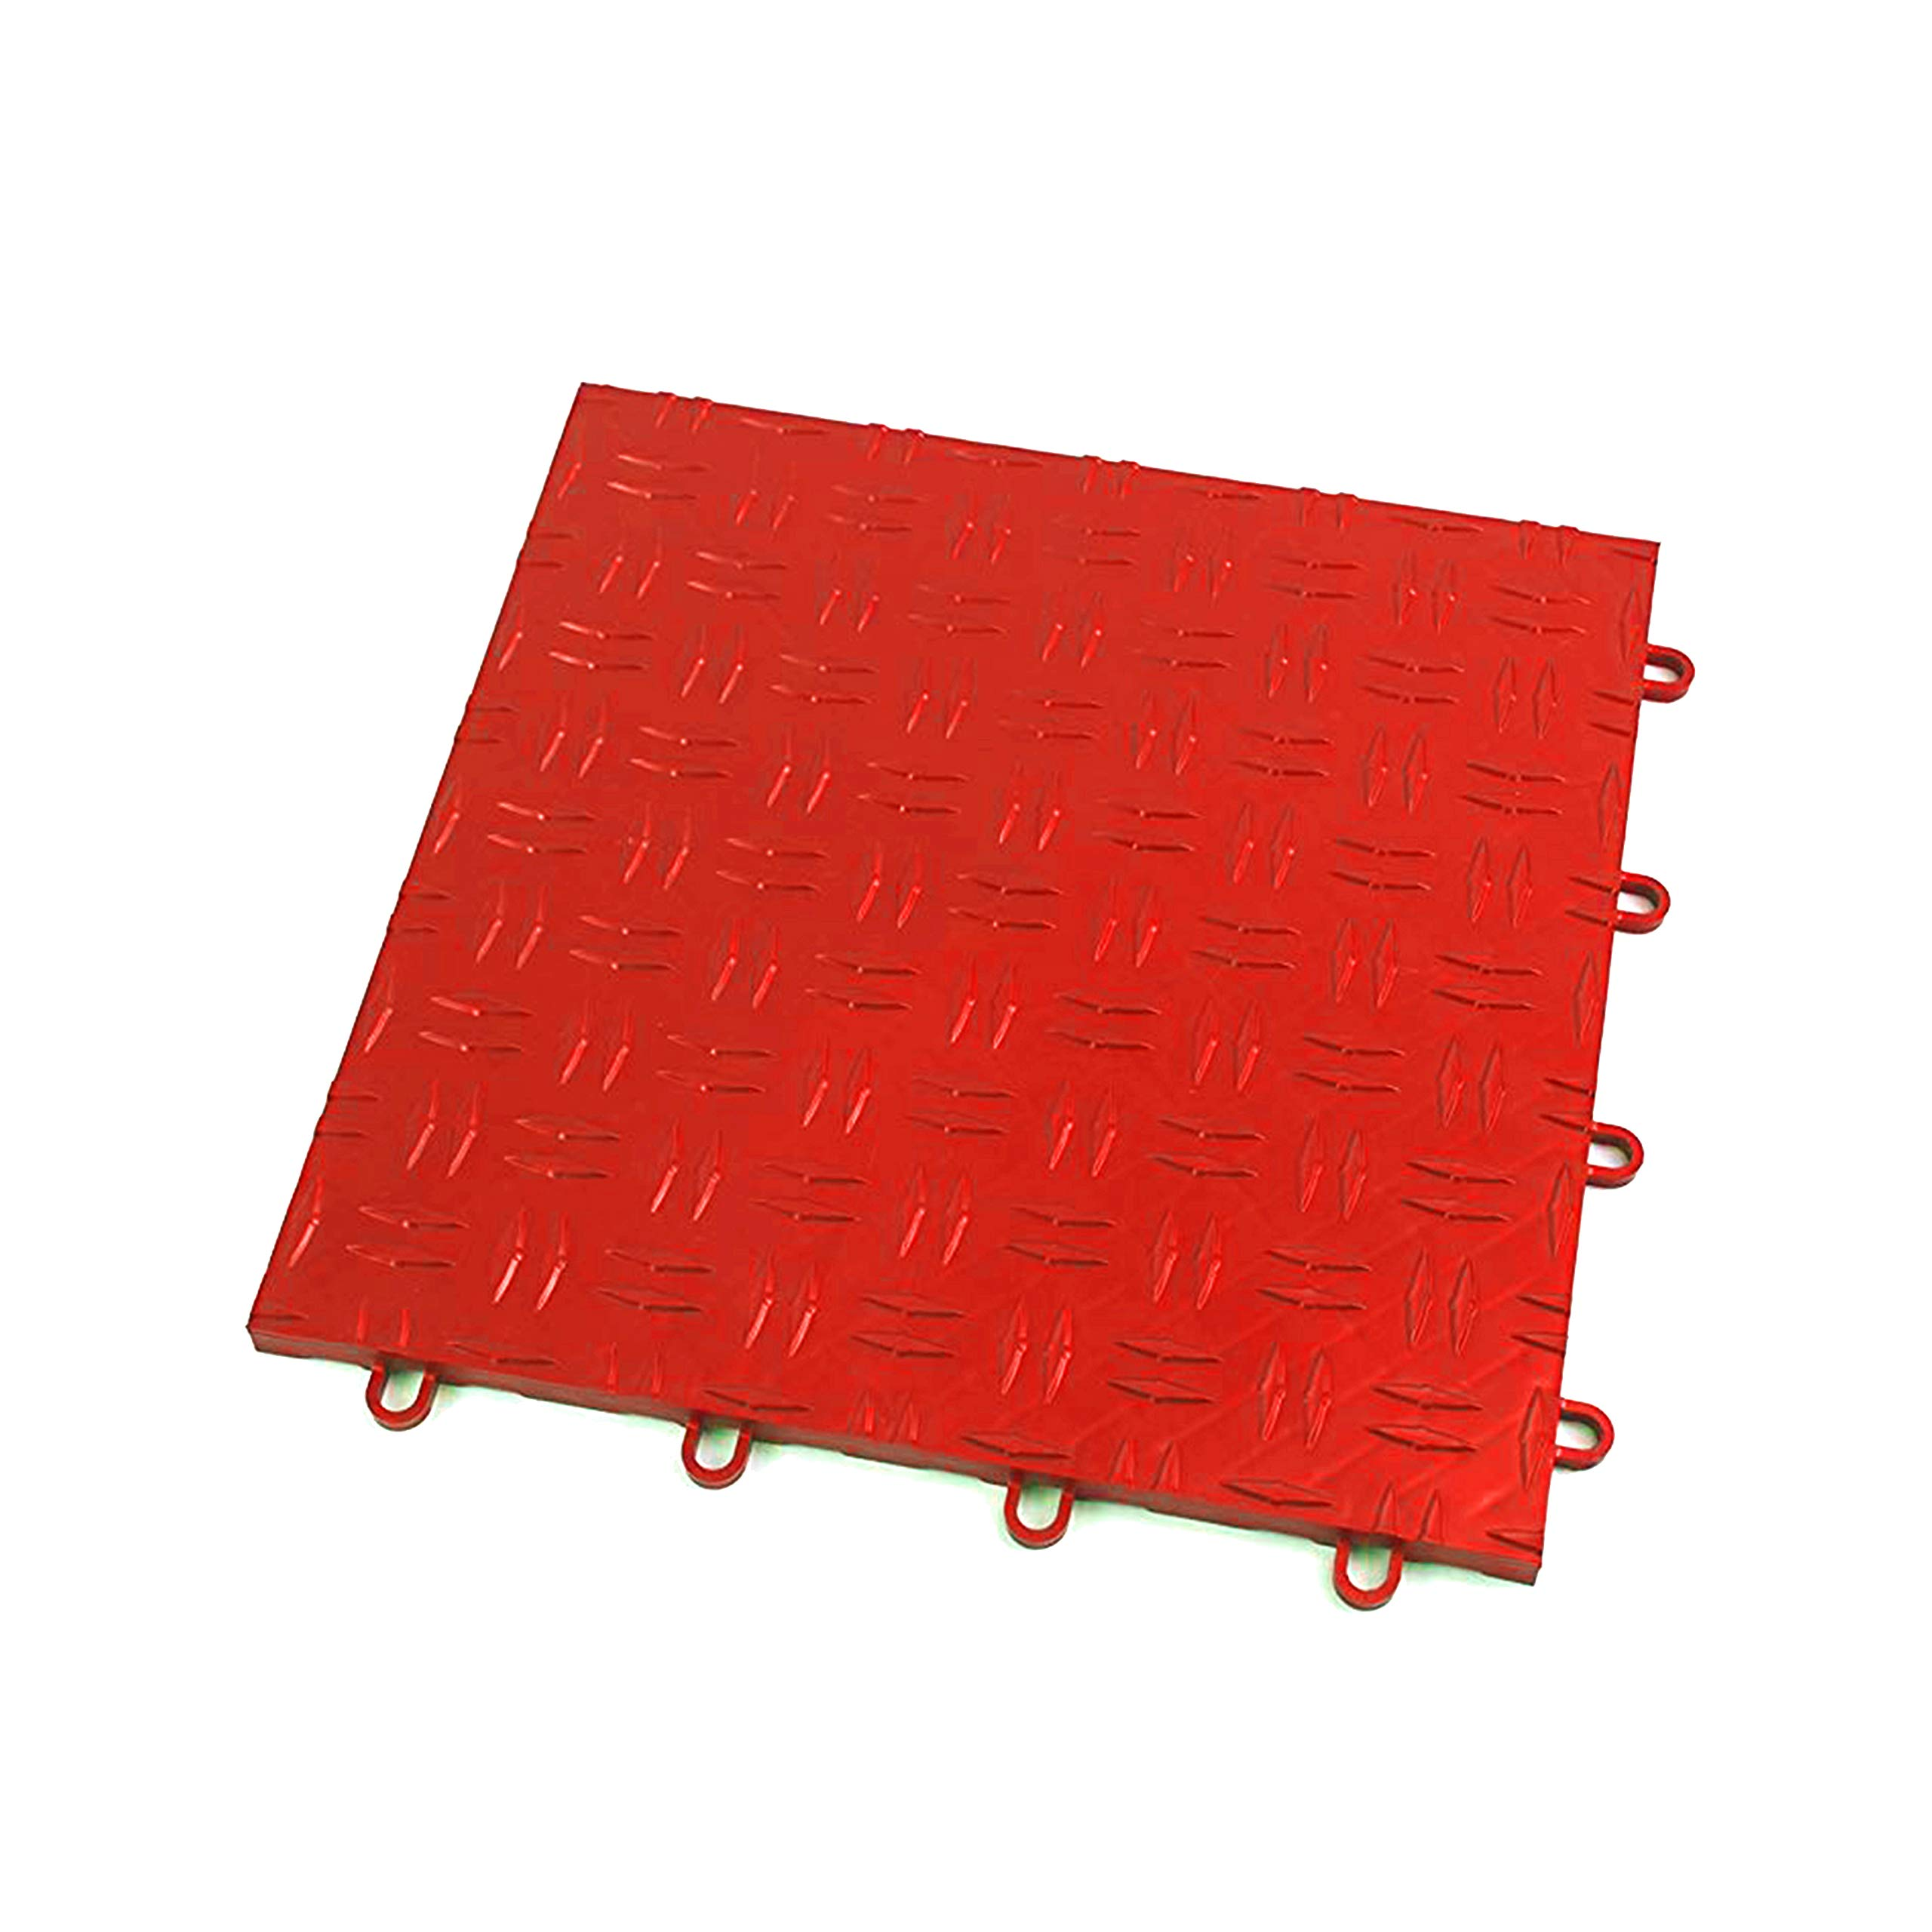 IncStores Diamond Grid-Loc Garage Flooring Snap Together Mat Drainage Tiles (48 Pack, Victory Red)